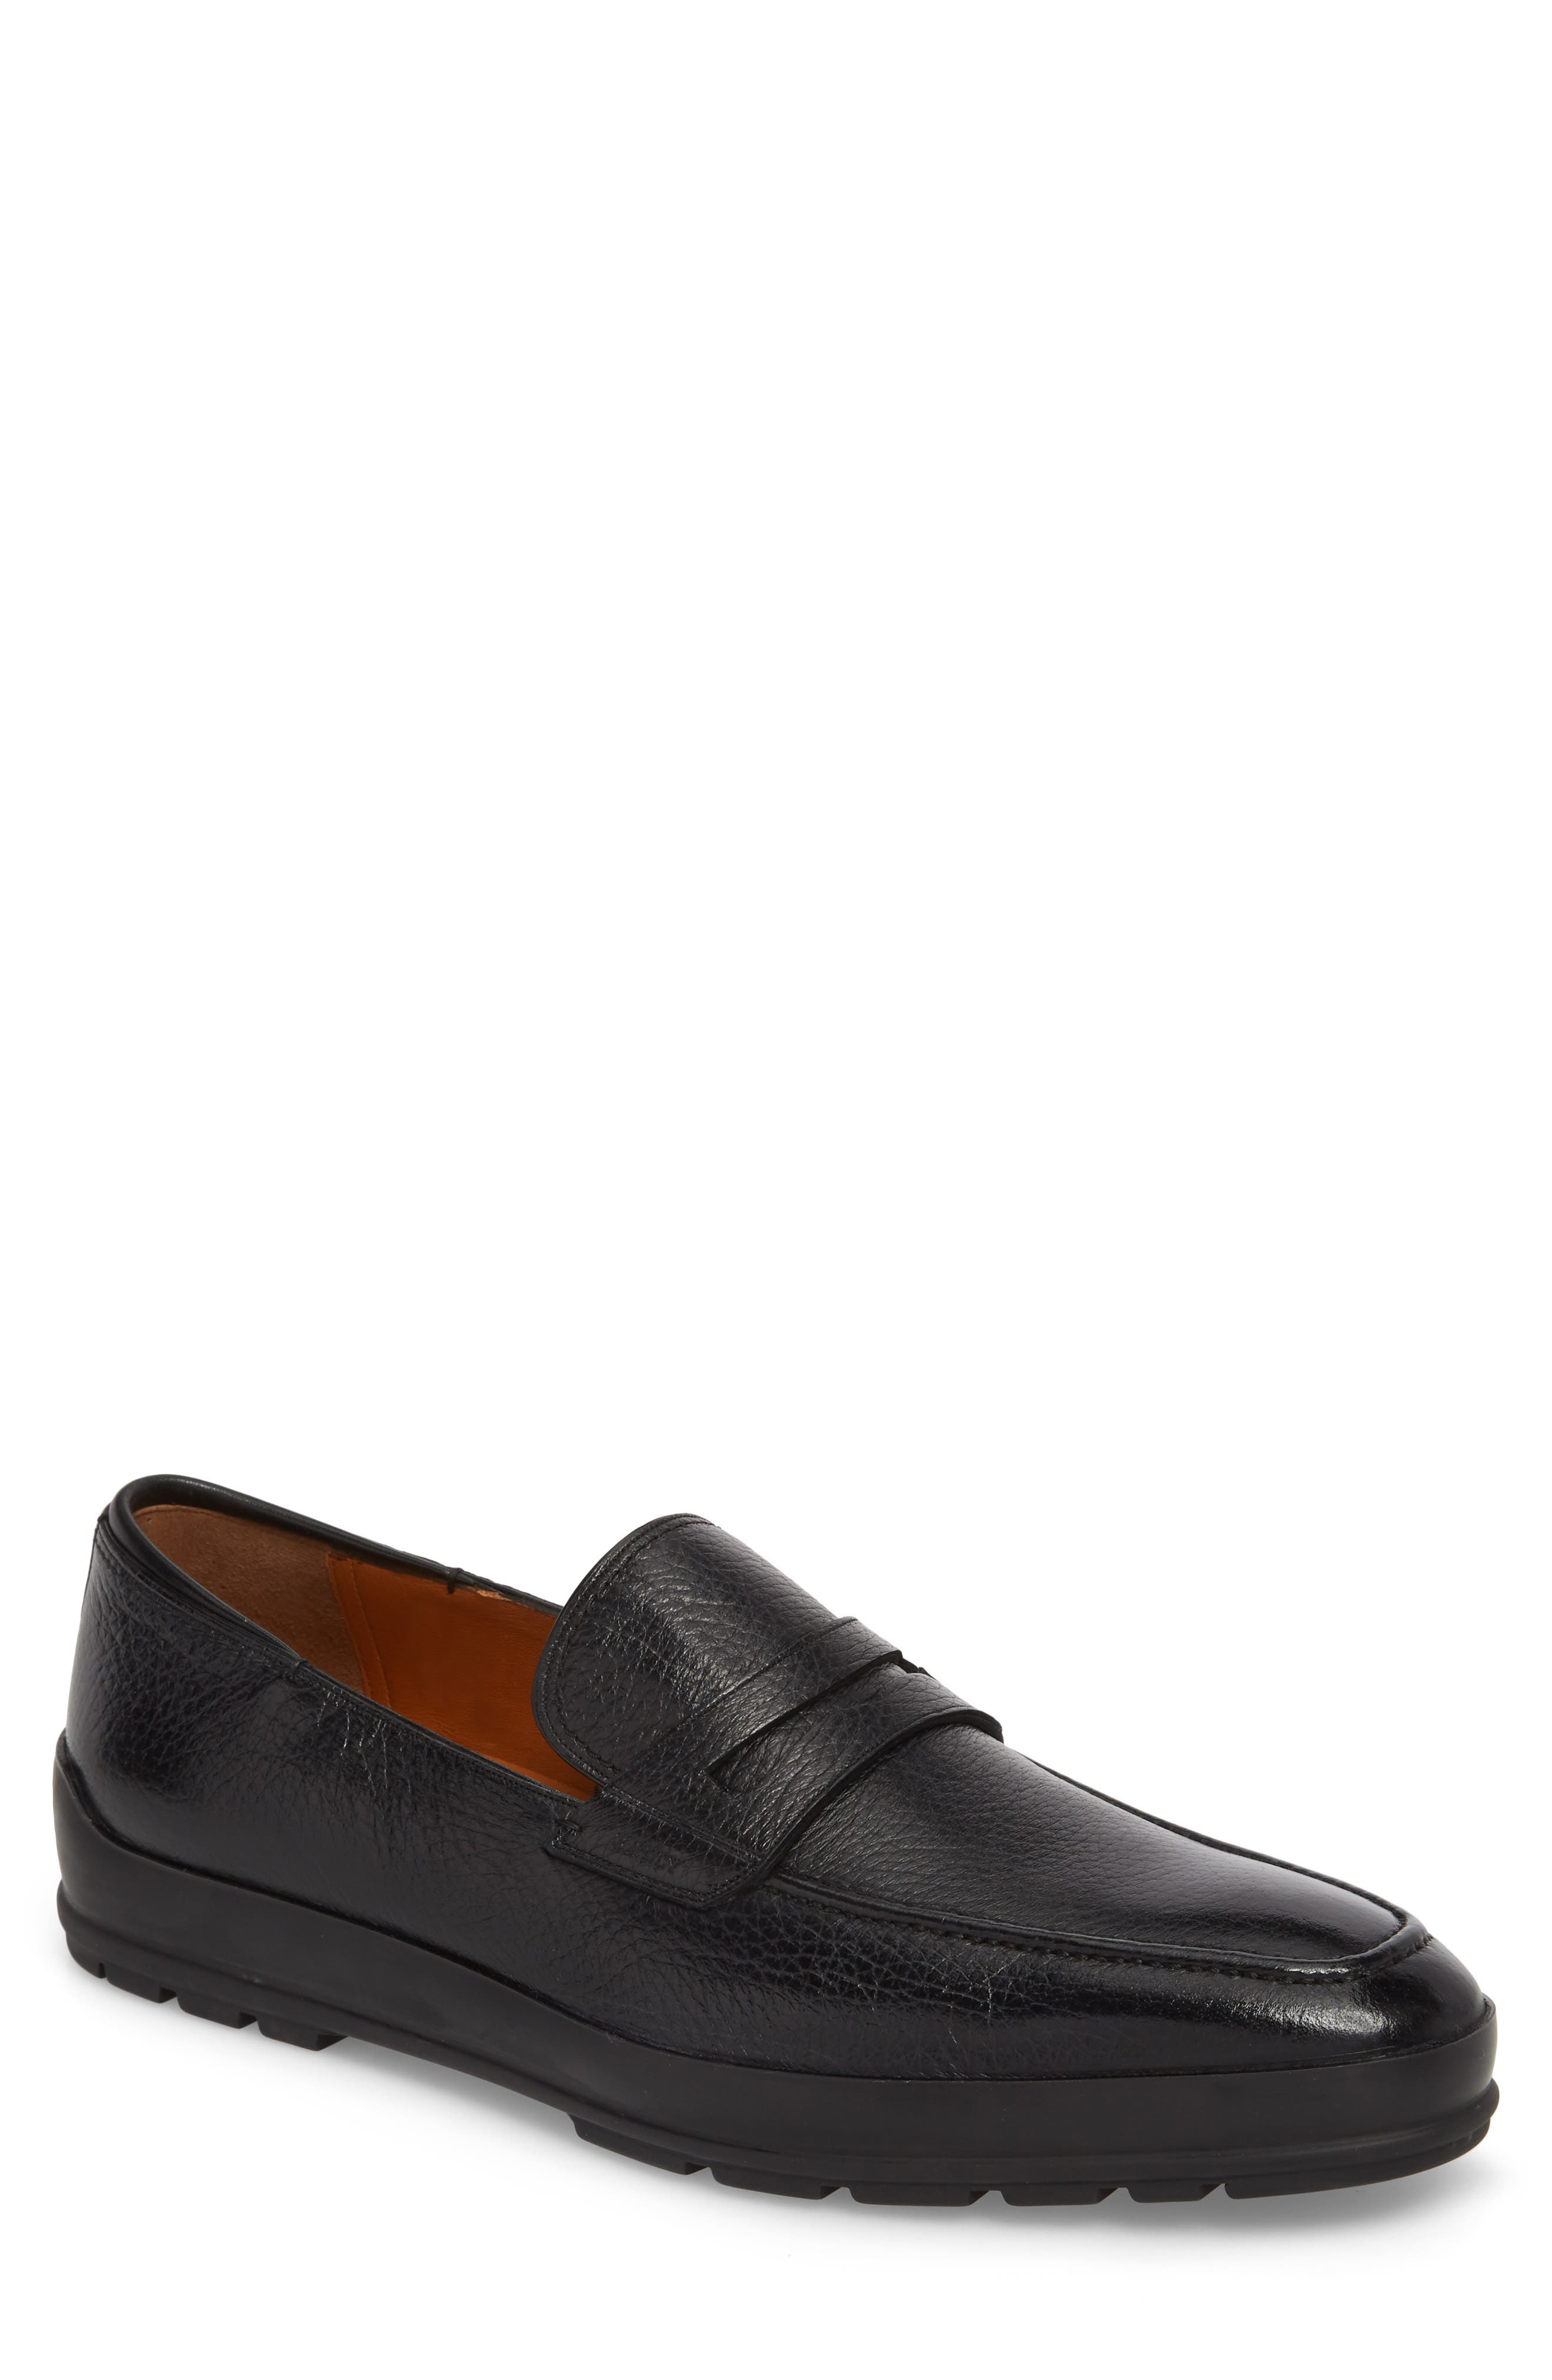 Relon Hybrid Penny Loafer,                             Main thumbnail 1, color,                             Black